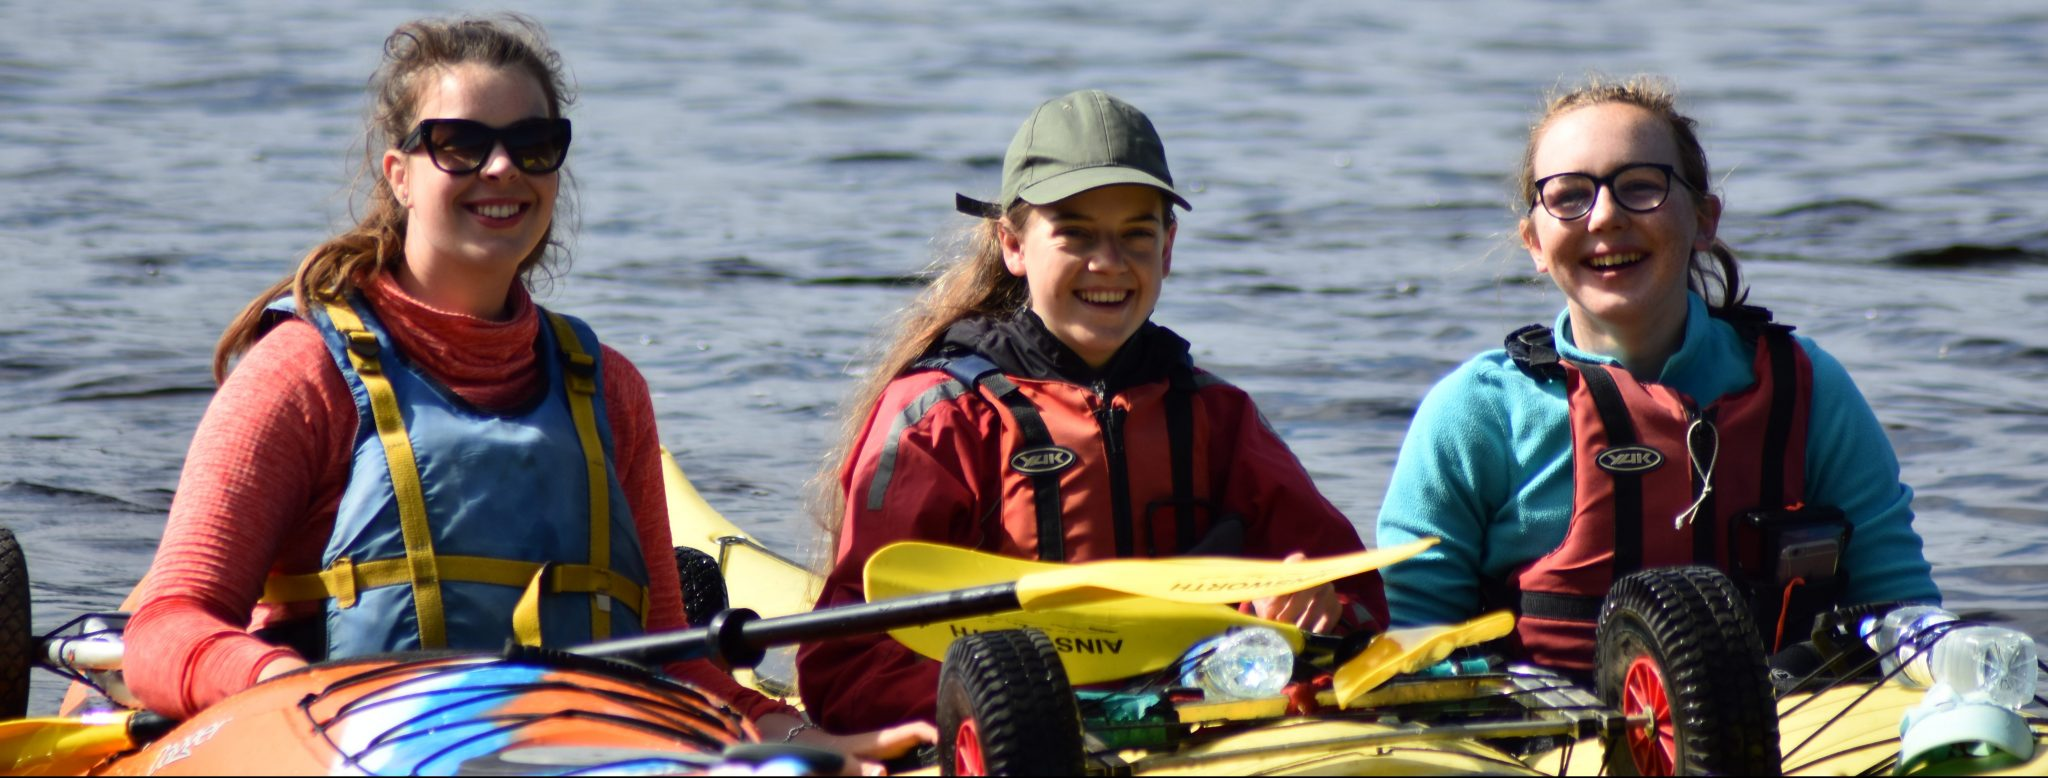 DofE silver expeditions